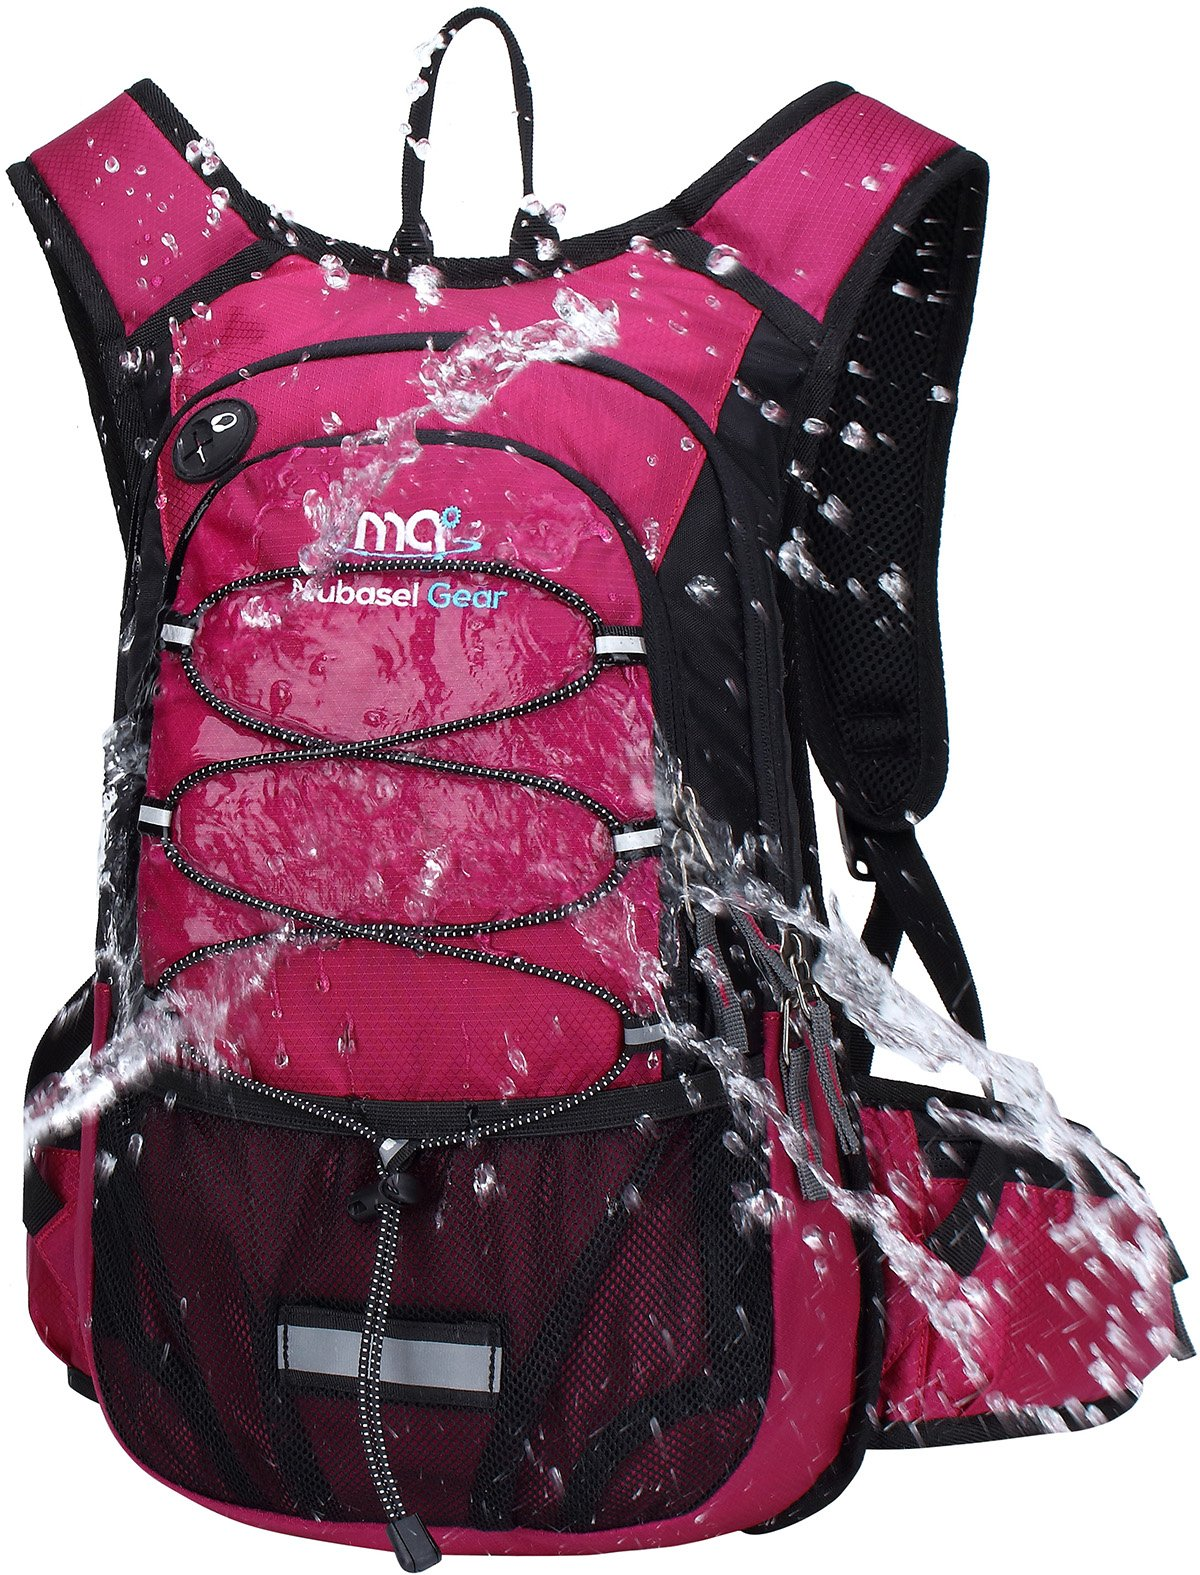 Mubasel Gear Insulated Hydration Backpack with 2L BPA Free Bladder - Keeps Liquid Cool up to 5 Hours – Waterproof Pack for Running, Hiking, Cycling, Camping (Purple)